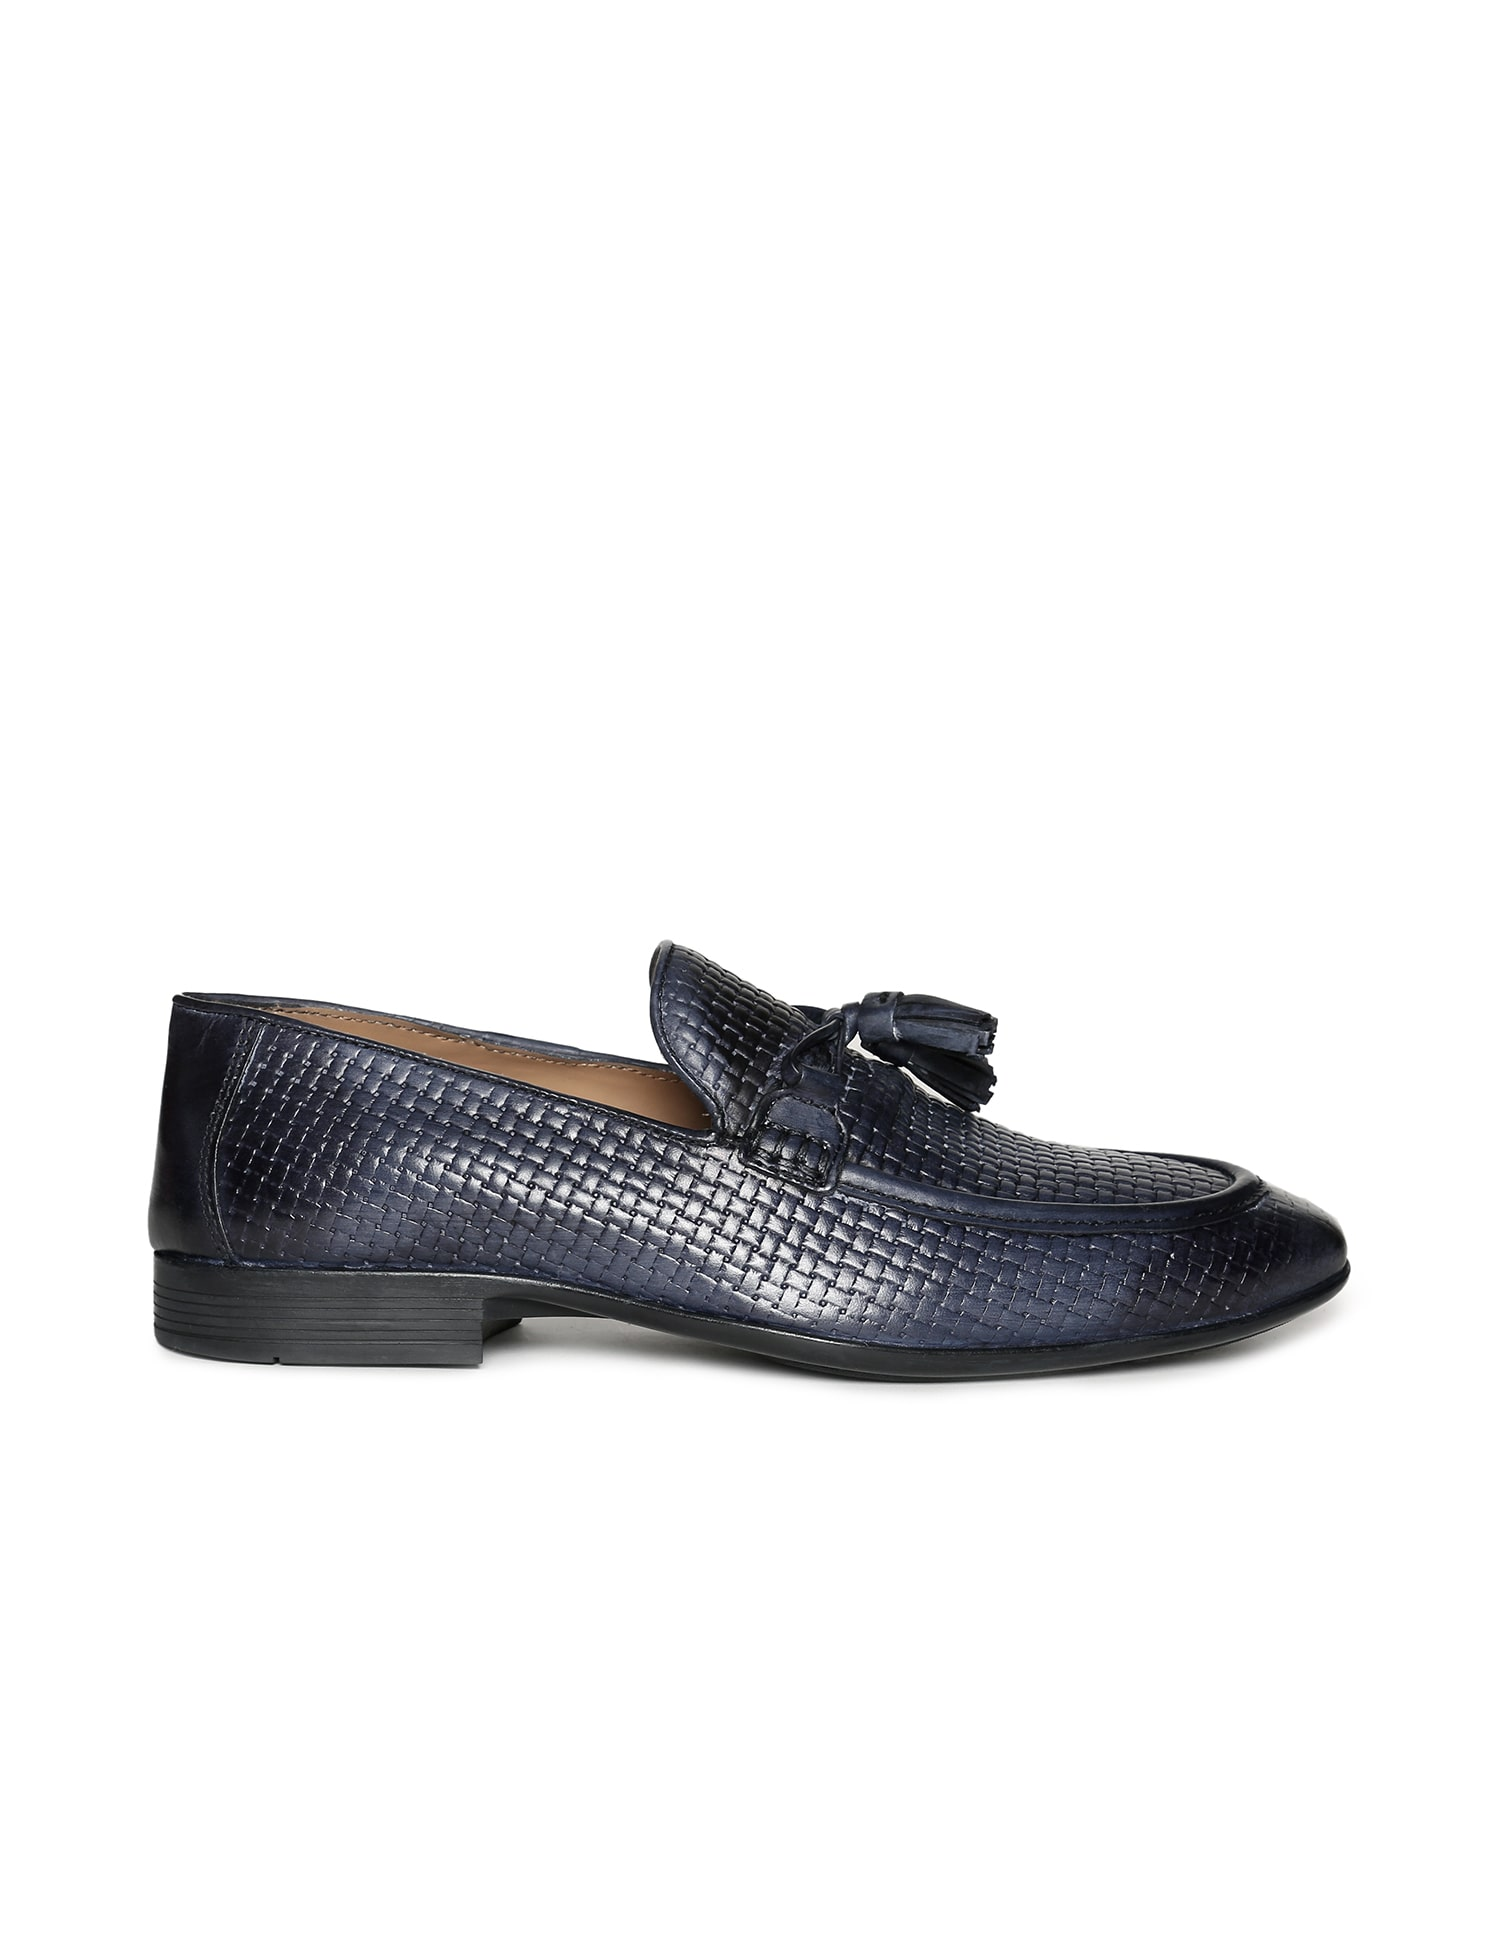 cea9b5f8a98 Home Men s Fashion Footwear Loafers.  https   assetscdn1.paytm.com images catalog product